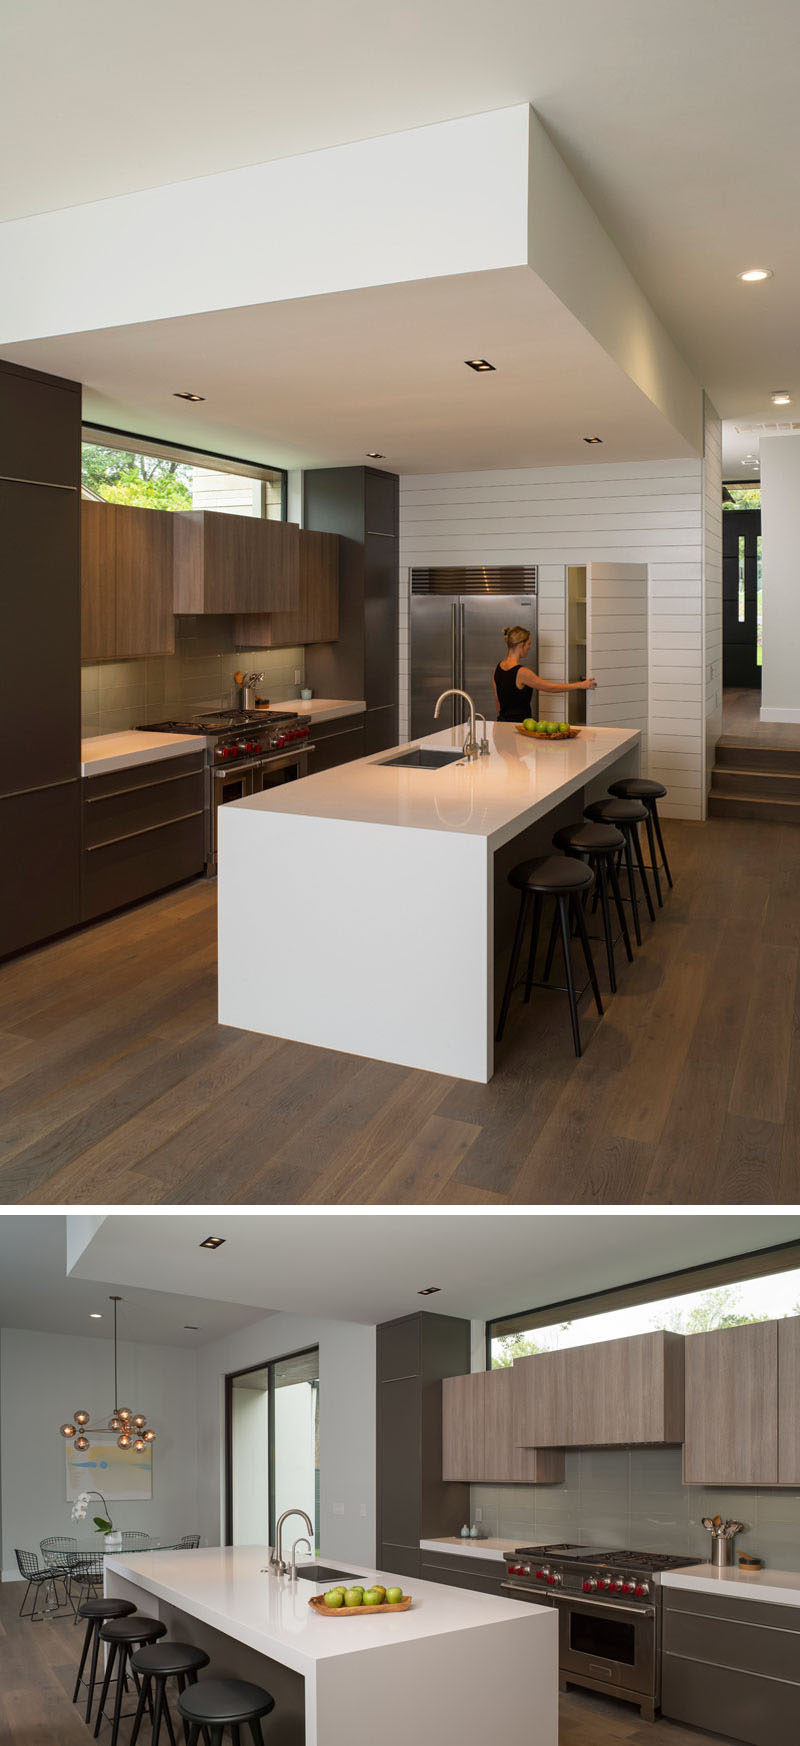 In this modern kitchen, the large white island with seating has plenty of room for guests to sit and chat, and a hidden pantry sits beside the fridge.